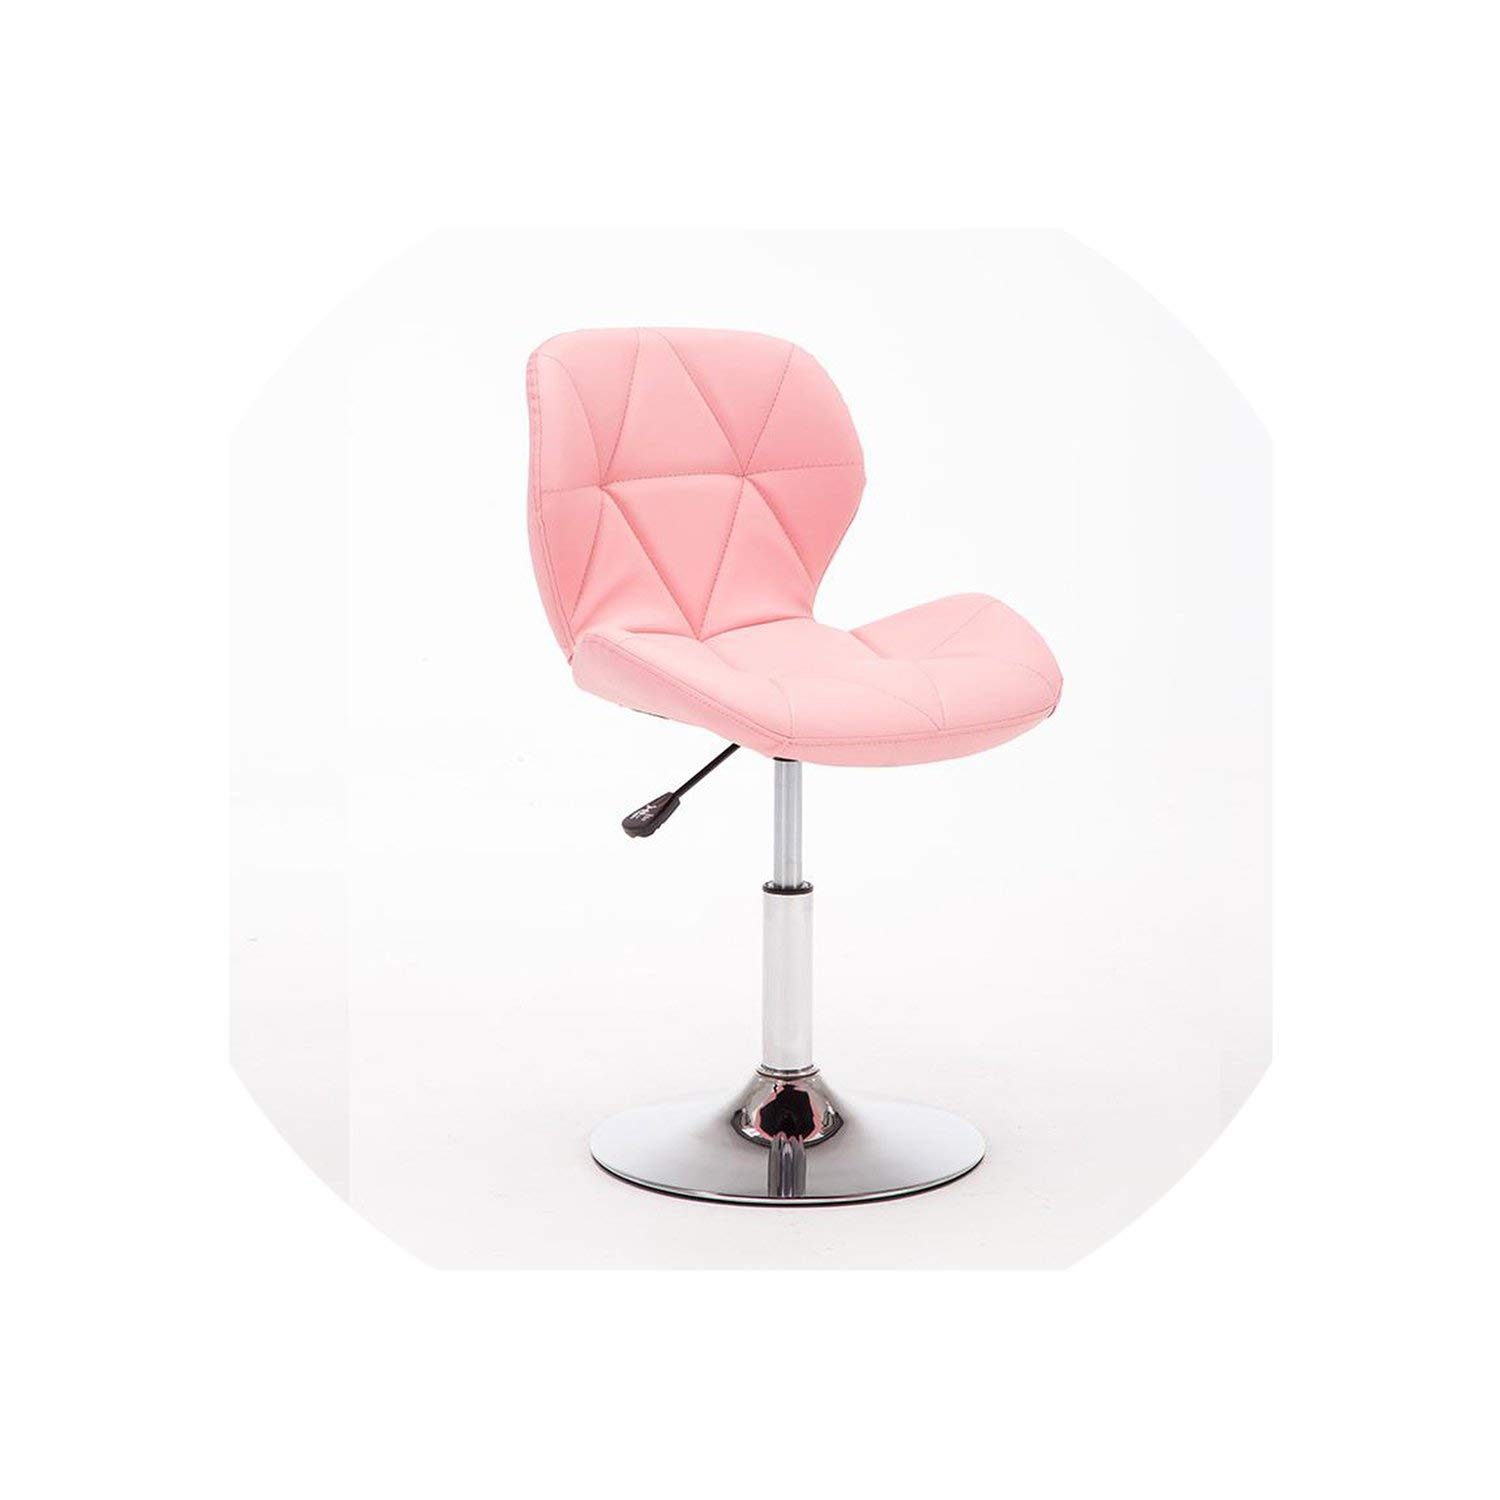 Style 7 tthappy76 New Bar Stools Bar Chair redating Lift Chair High Stools Home Fashion Creative Beauty Stool Swivel Chair,Style 9